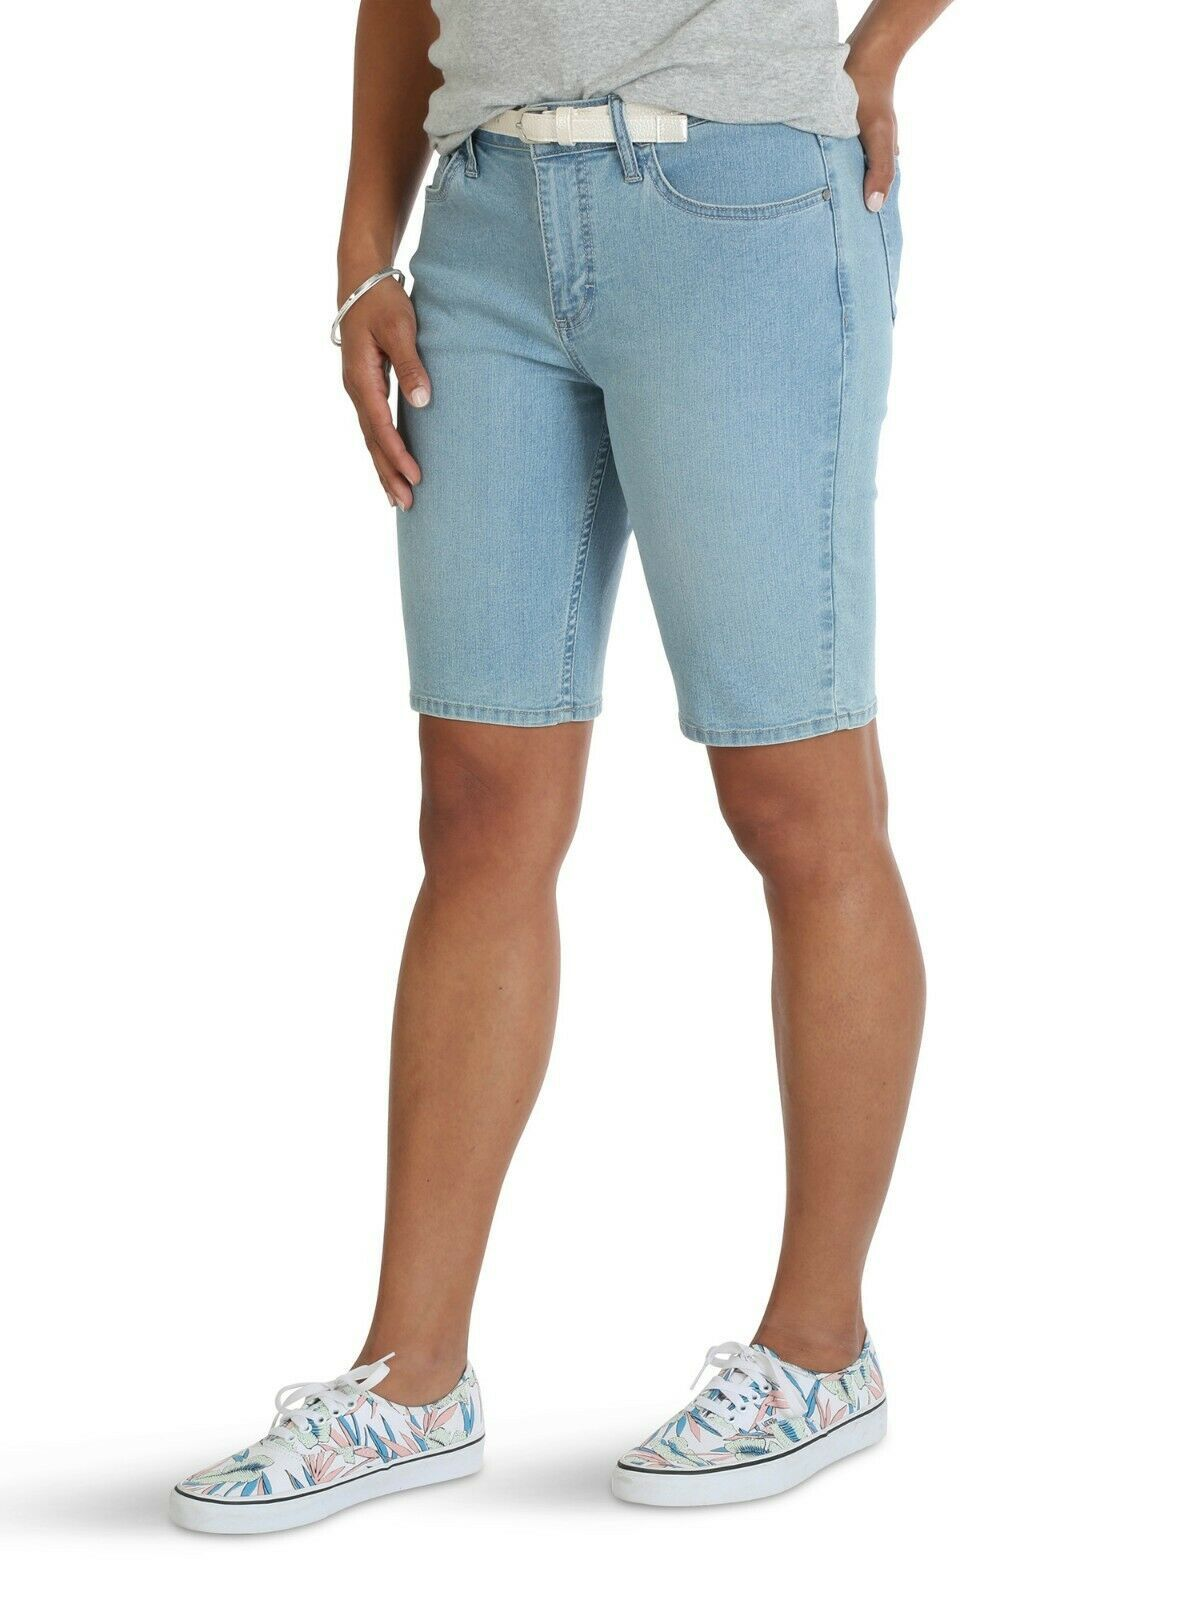 Primary image for Lee Riders Women's Belted Bermuda Shorts Denim Jeans Falling Star Pocket Size 6